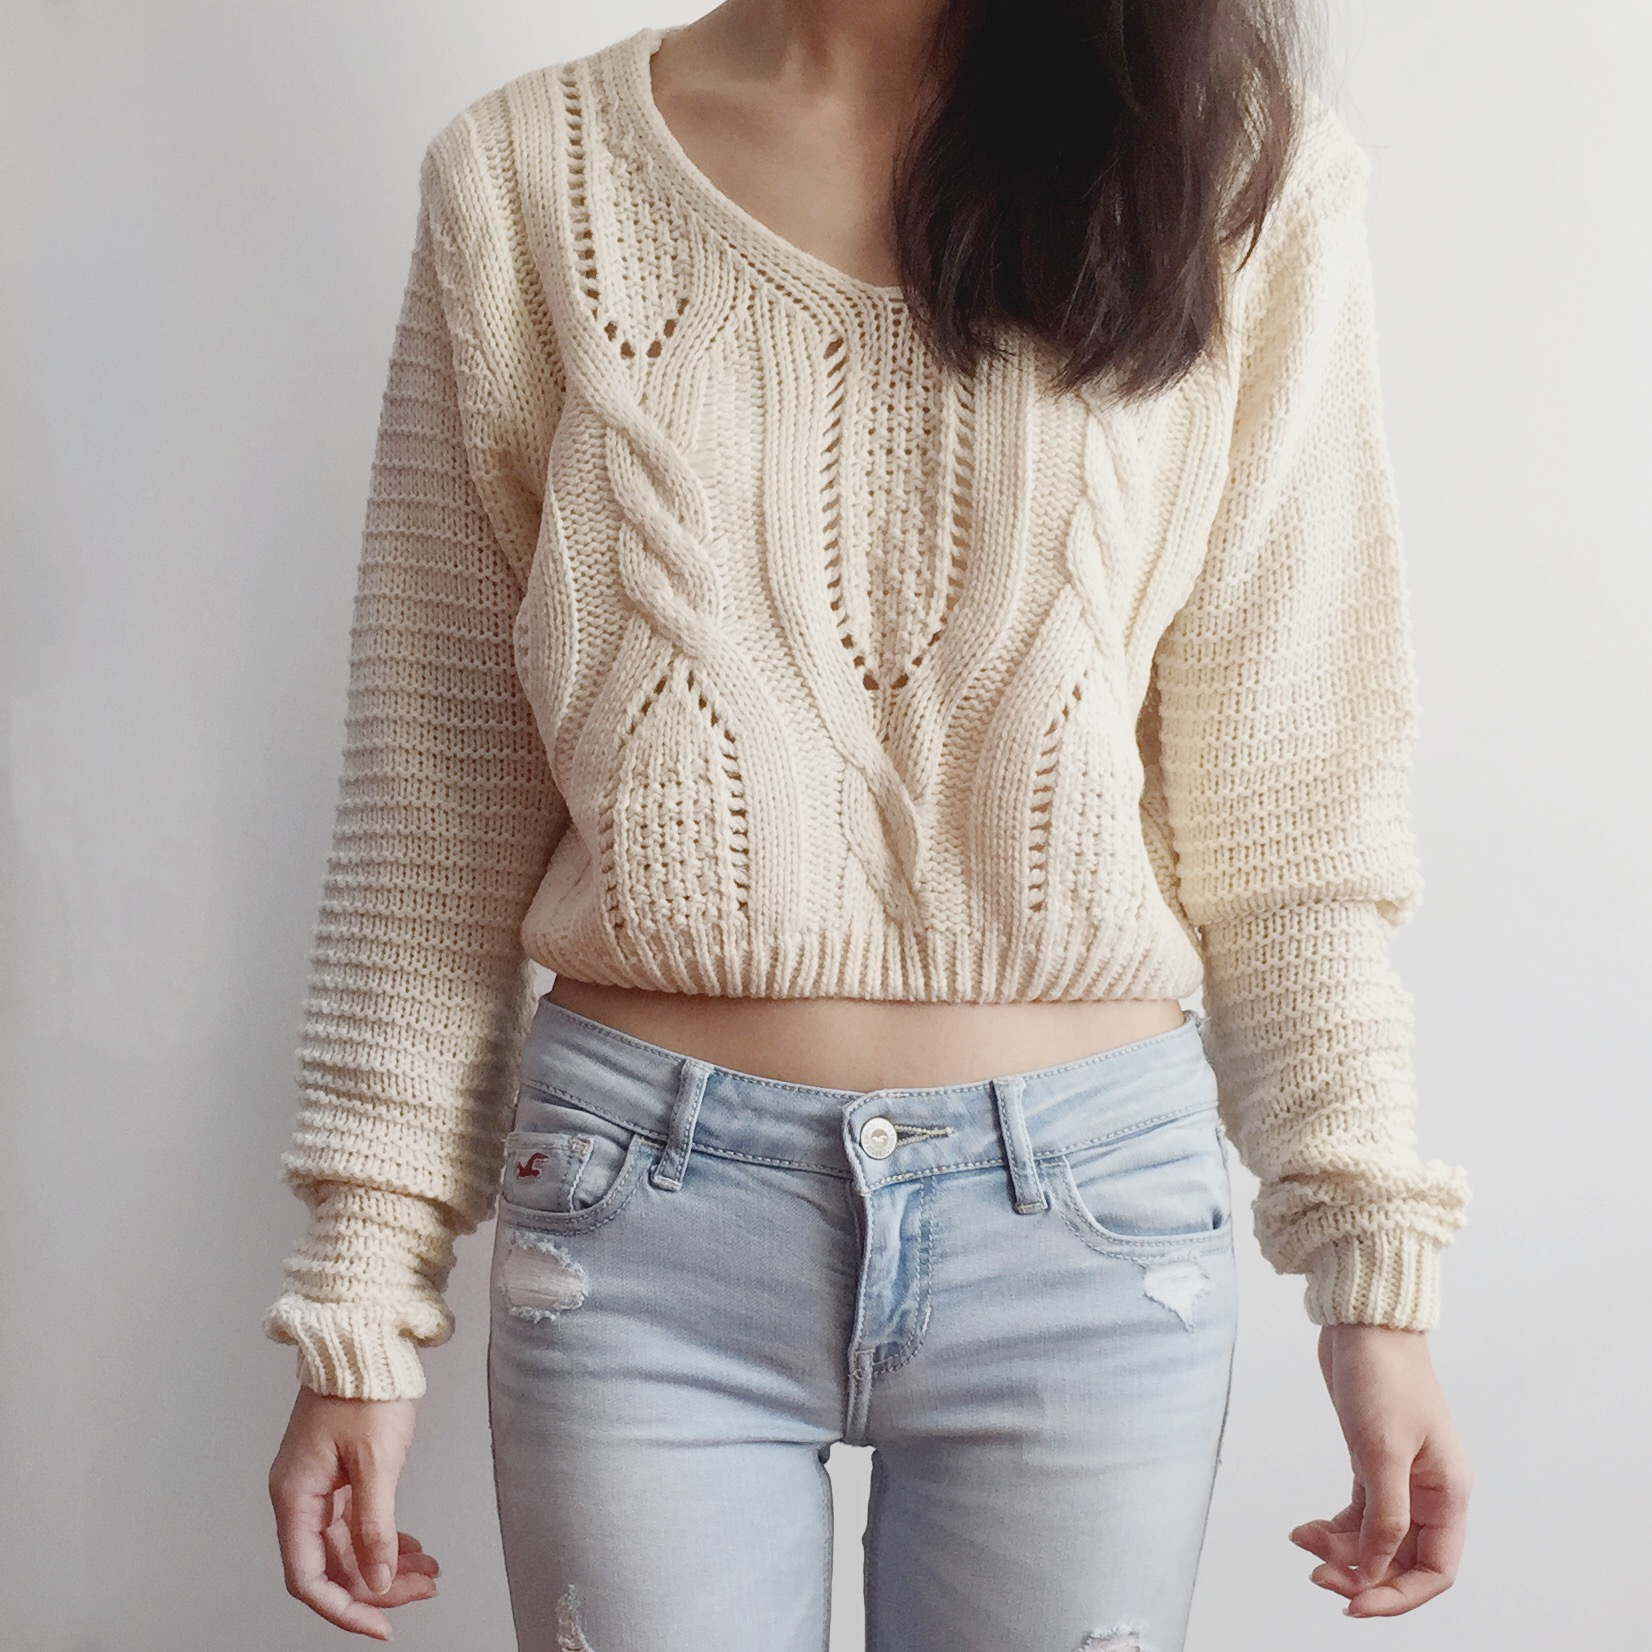 9b2747ee0d Lace Up Back Cropped Knit Sweater (Cream) · Megoosta Fashion · Free ...